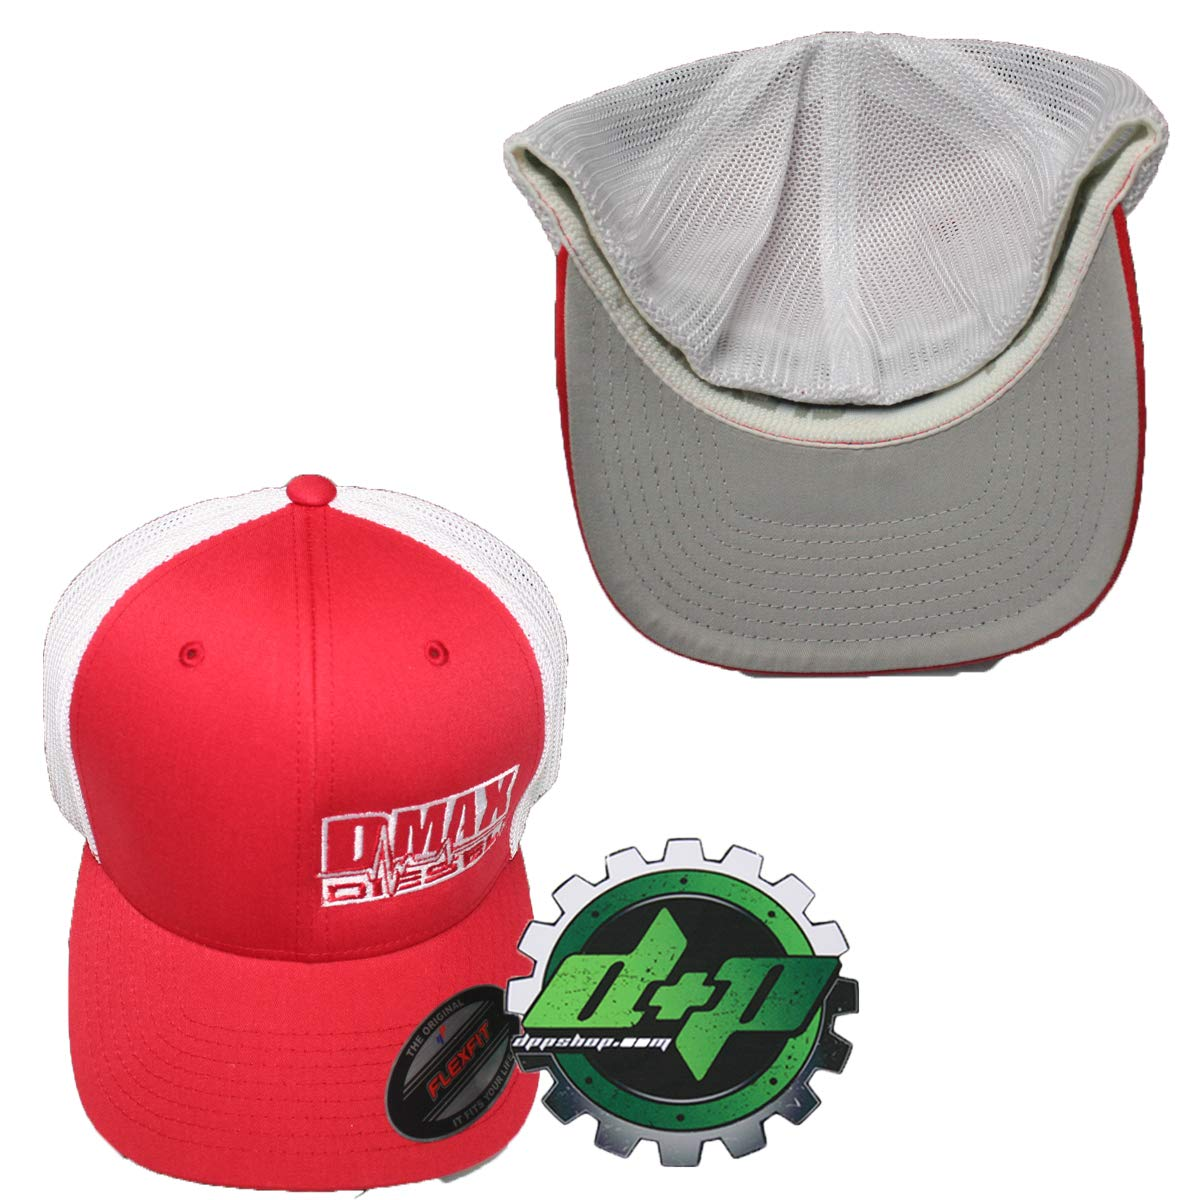 a542d4ece Amazon.com : OSFM DMAX Diesel Flexfit Fitted Flex fit Trucker Ball Cap hat  Chevy Duramax red : Sports & Outdoors